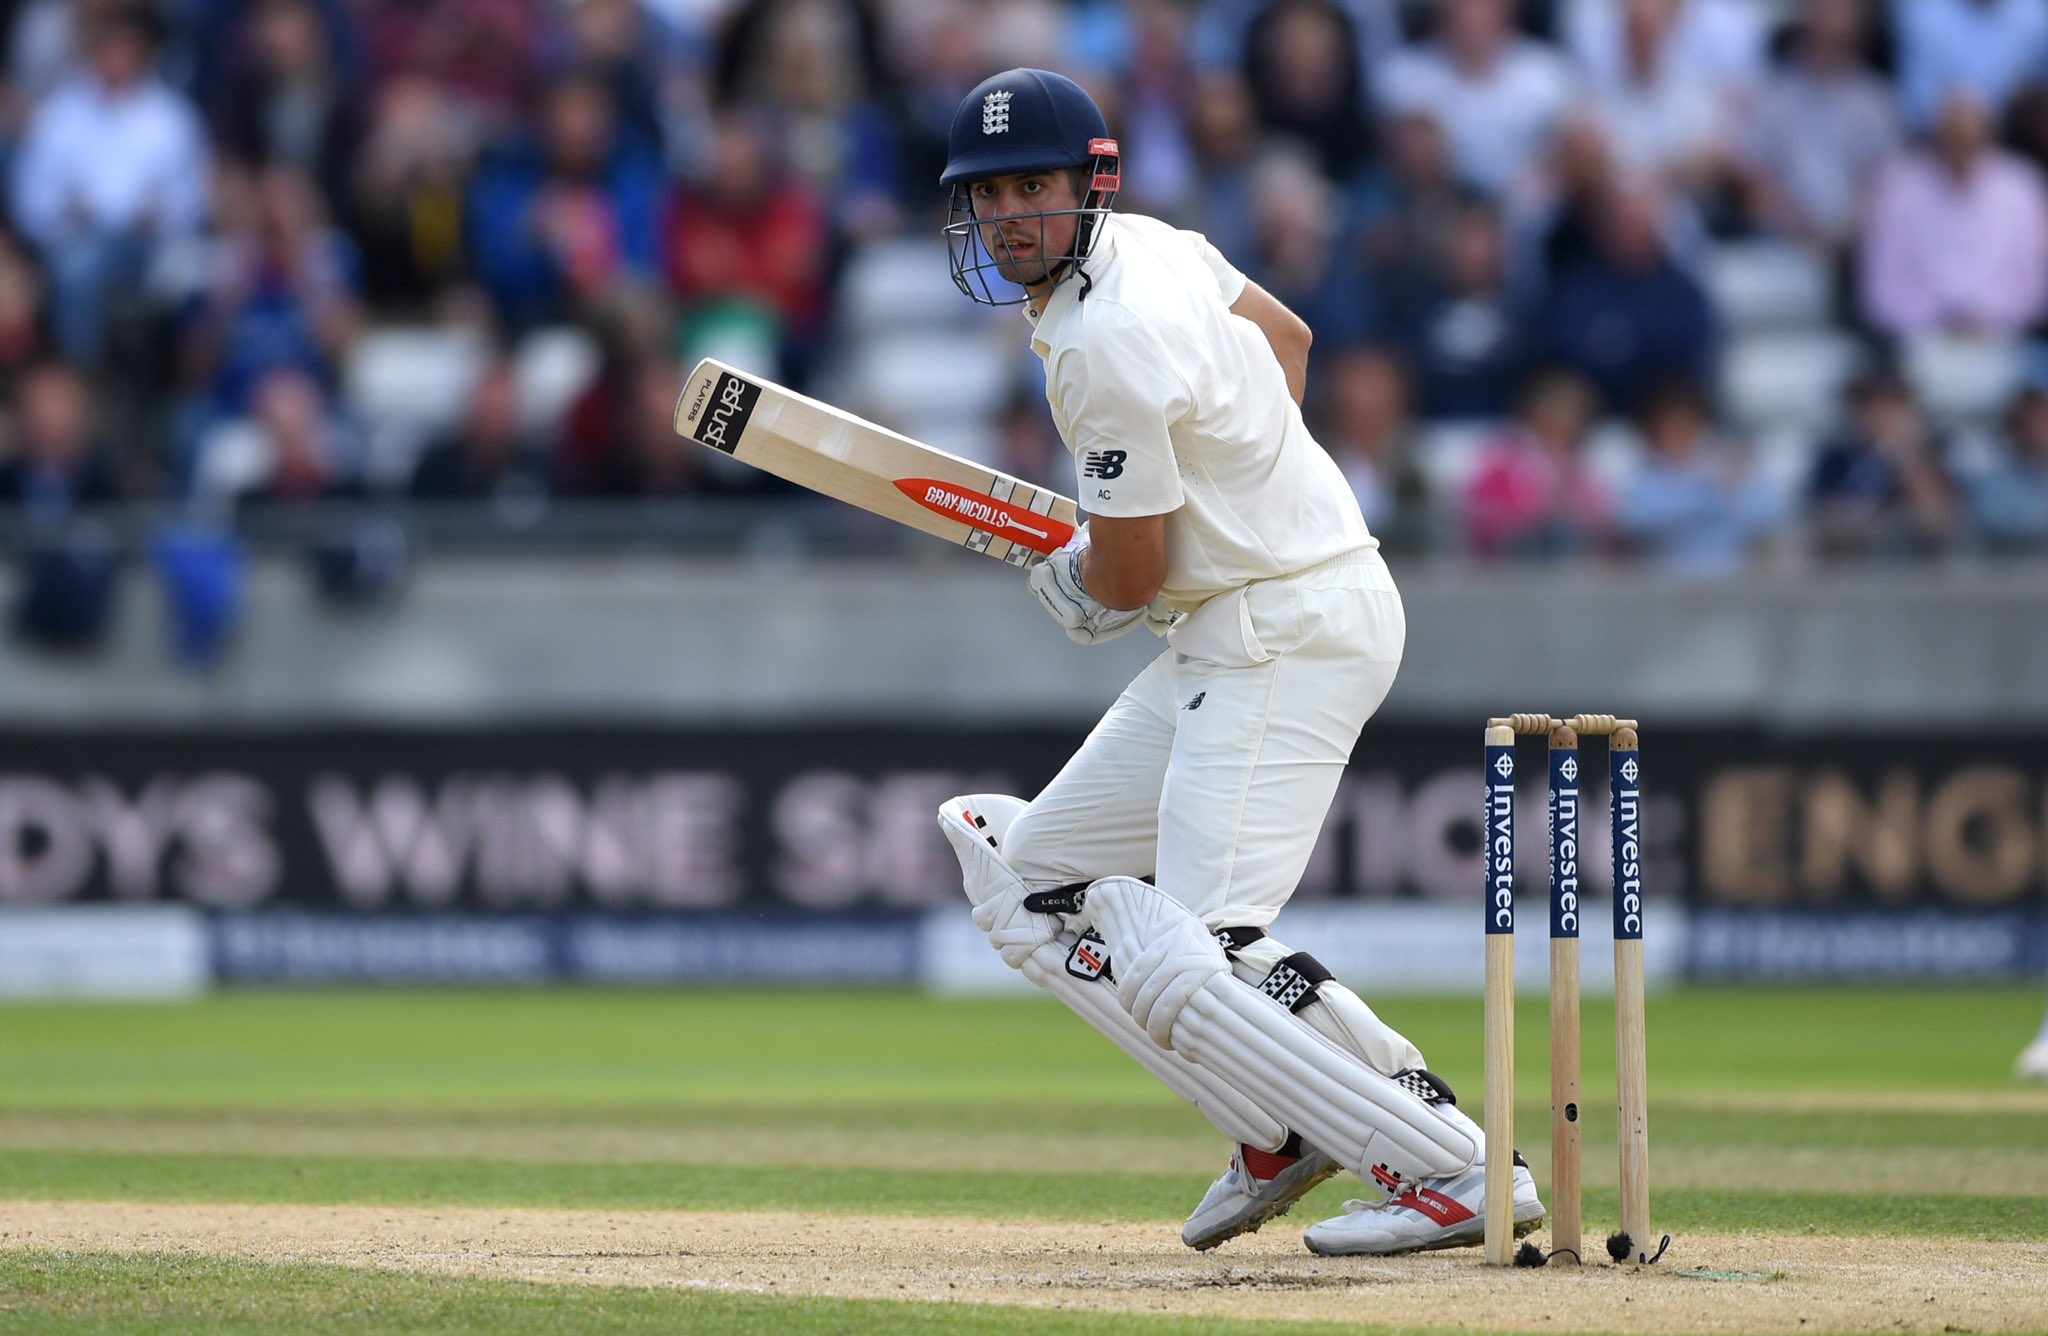 RT @bbctms: PODCAST:   Our review as Cook doubles up at Edgbaston.   https://t.co/d1jD2amS38  #bbccricket https://t.co/7epciea1Gn